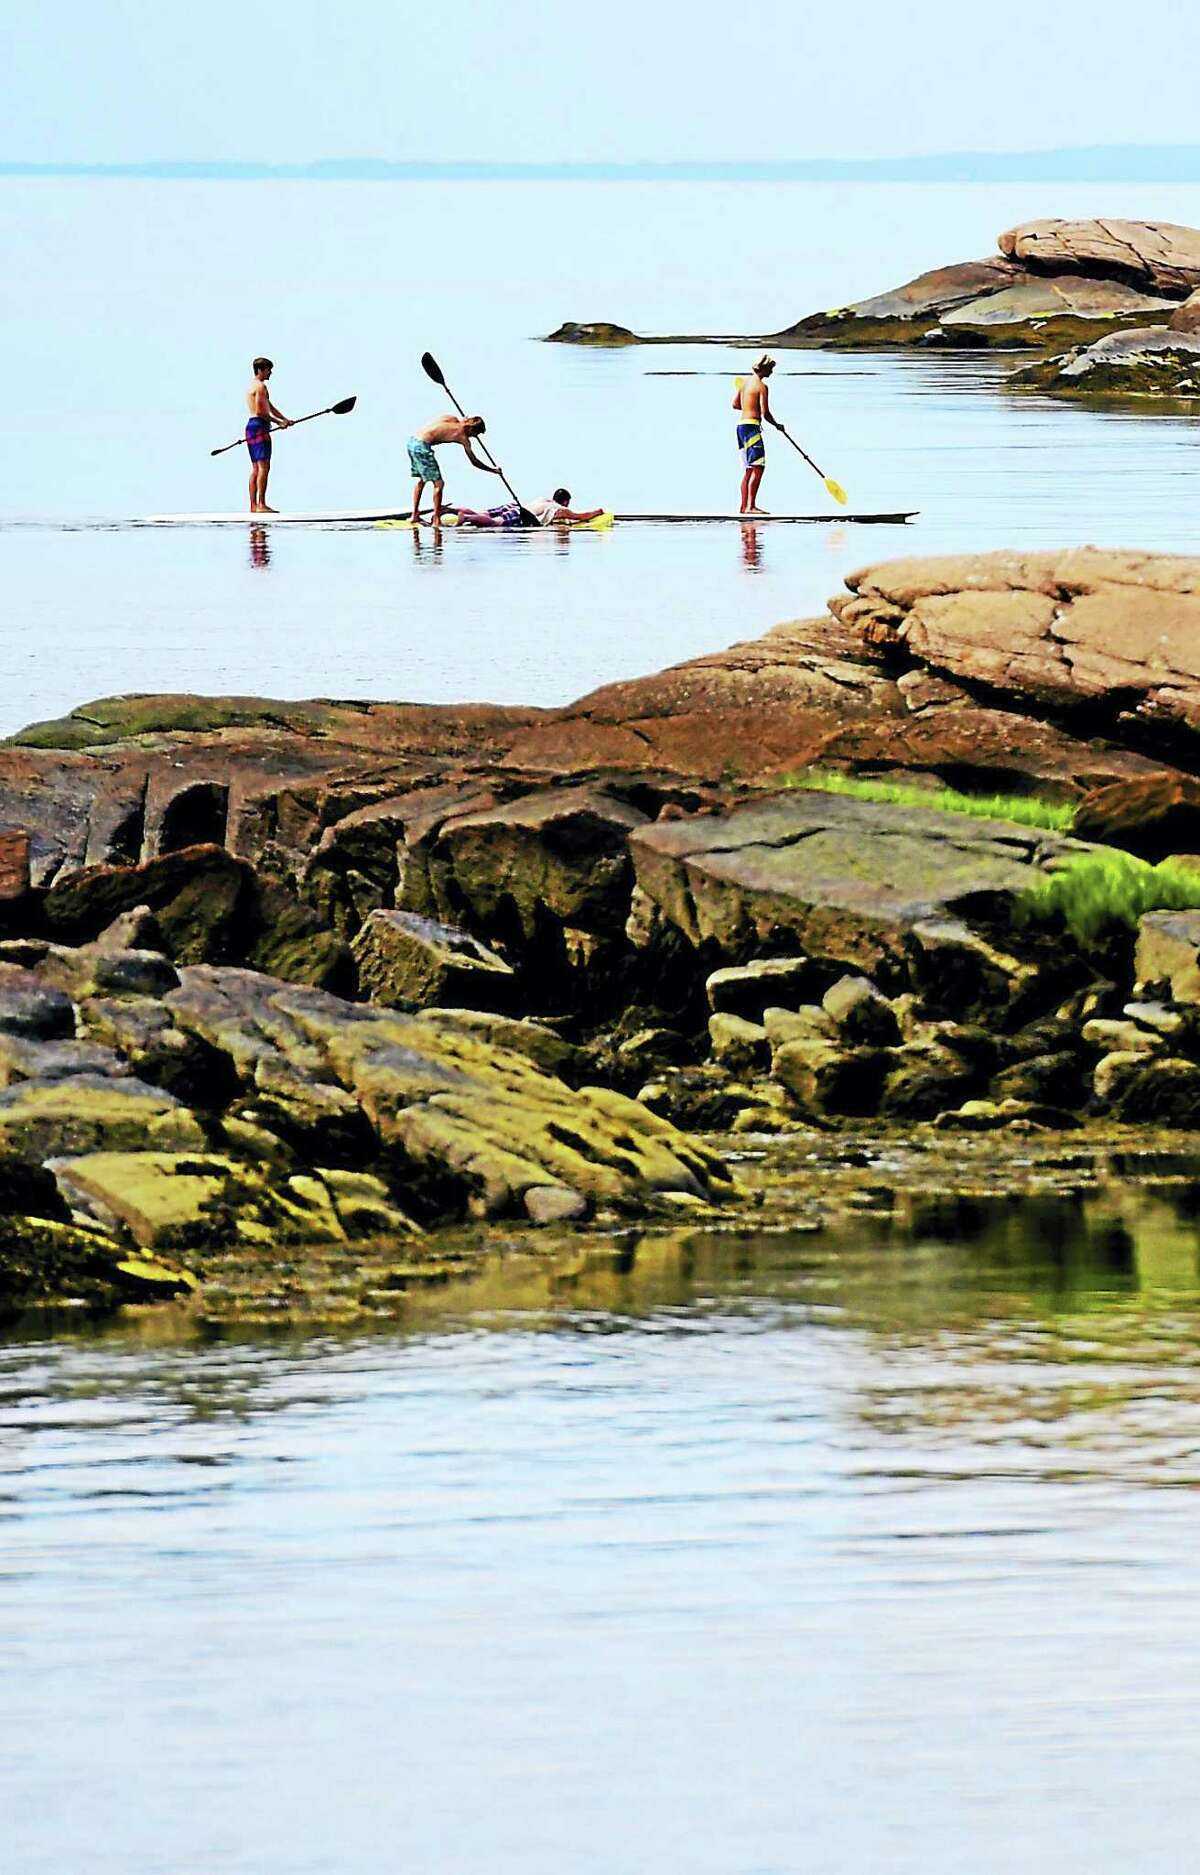 Four boys of summer paddle themselves around near Democrat rock near Shore Road in Branford